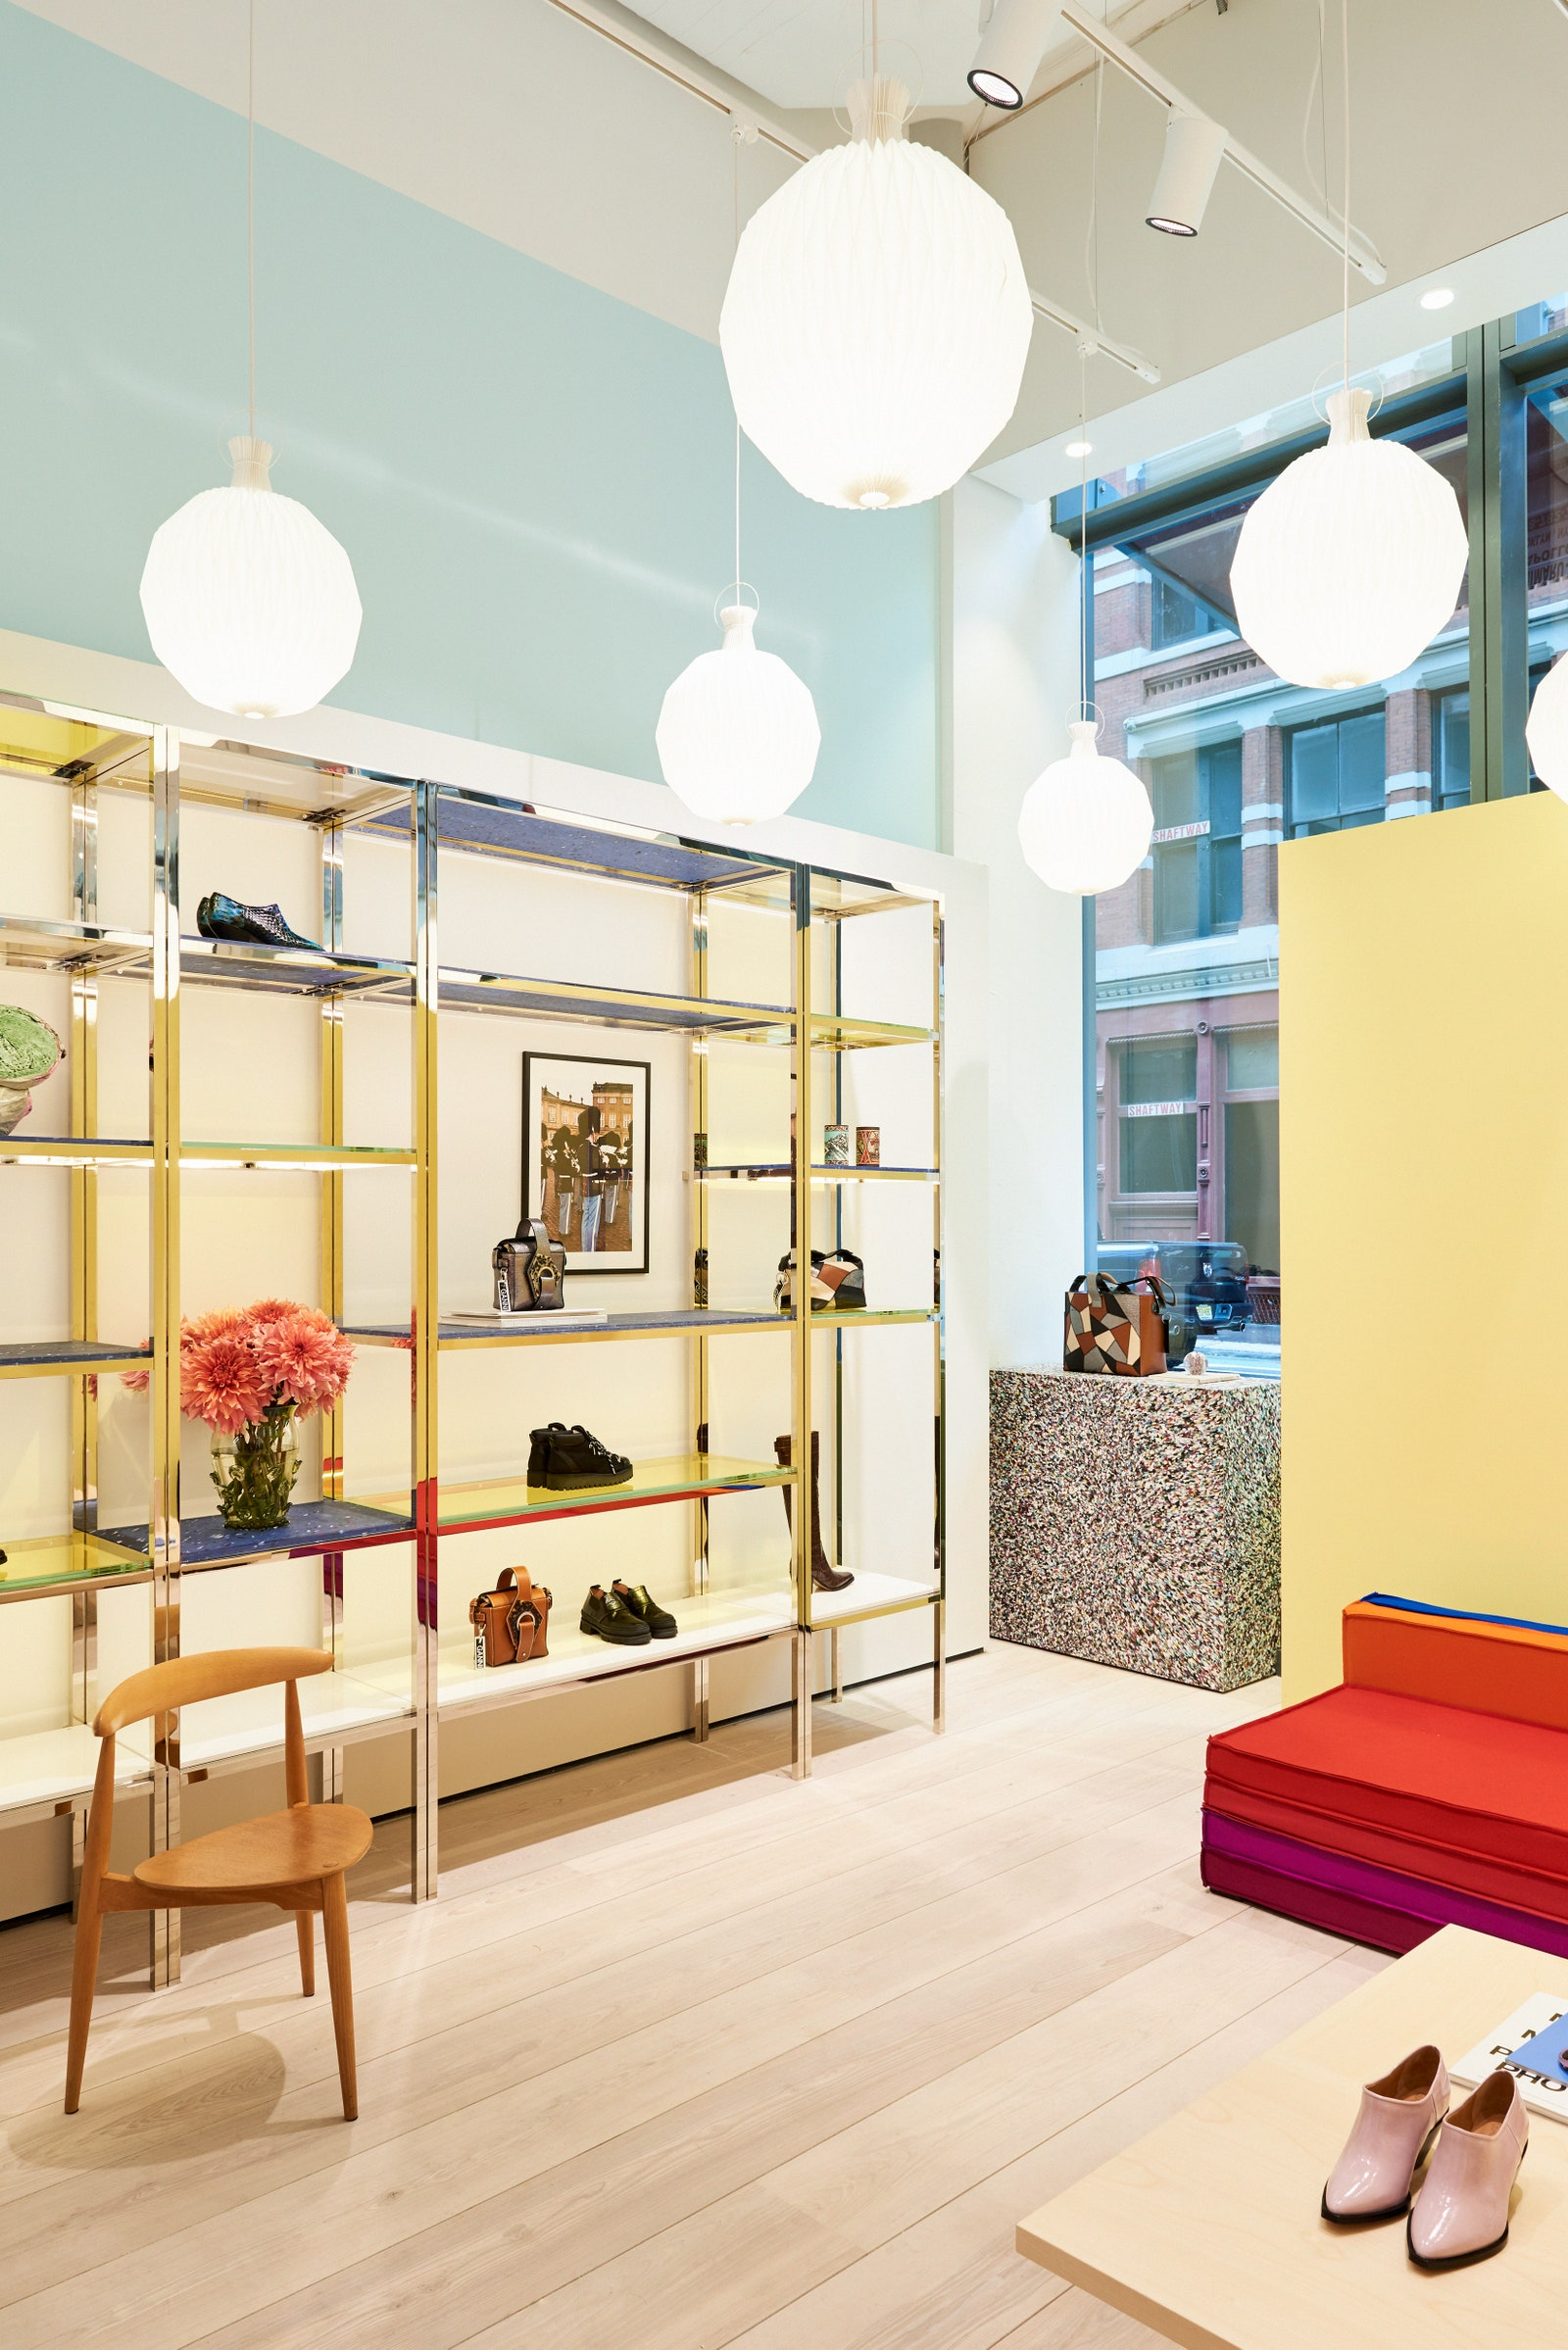 Ganni Sustainable store   The why, wow and how of sustainability in Visual Merchandising   Studio Rêver   Design Blog